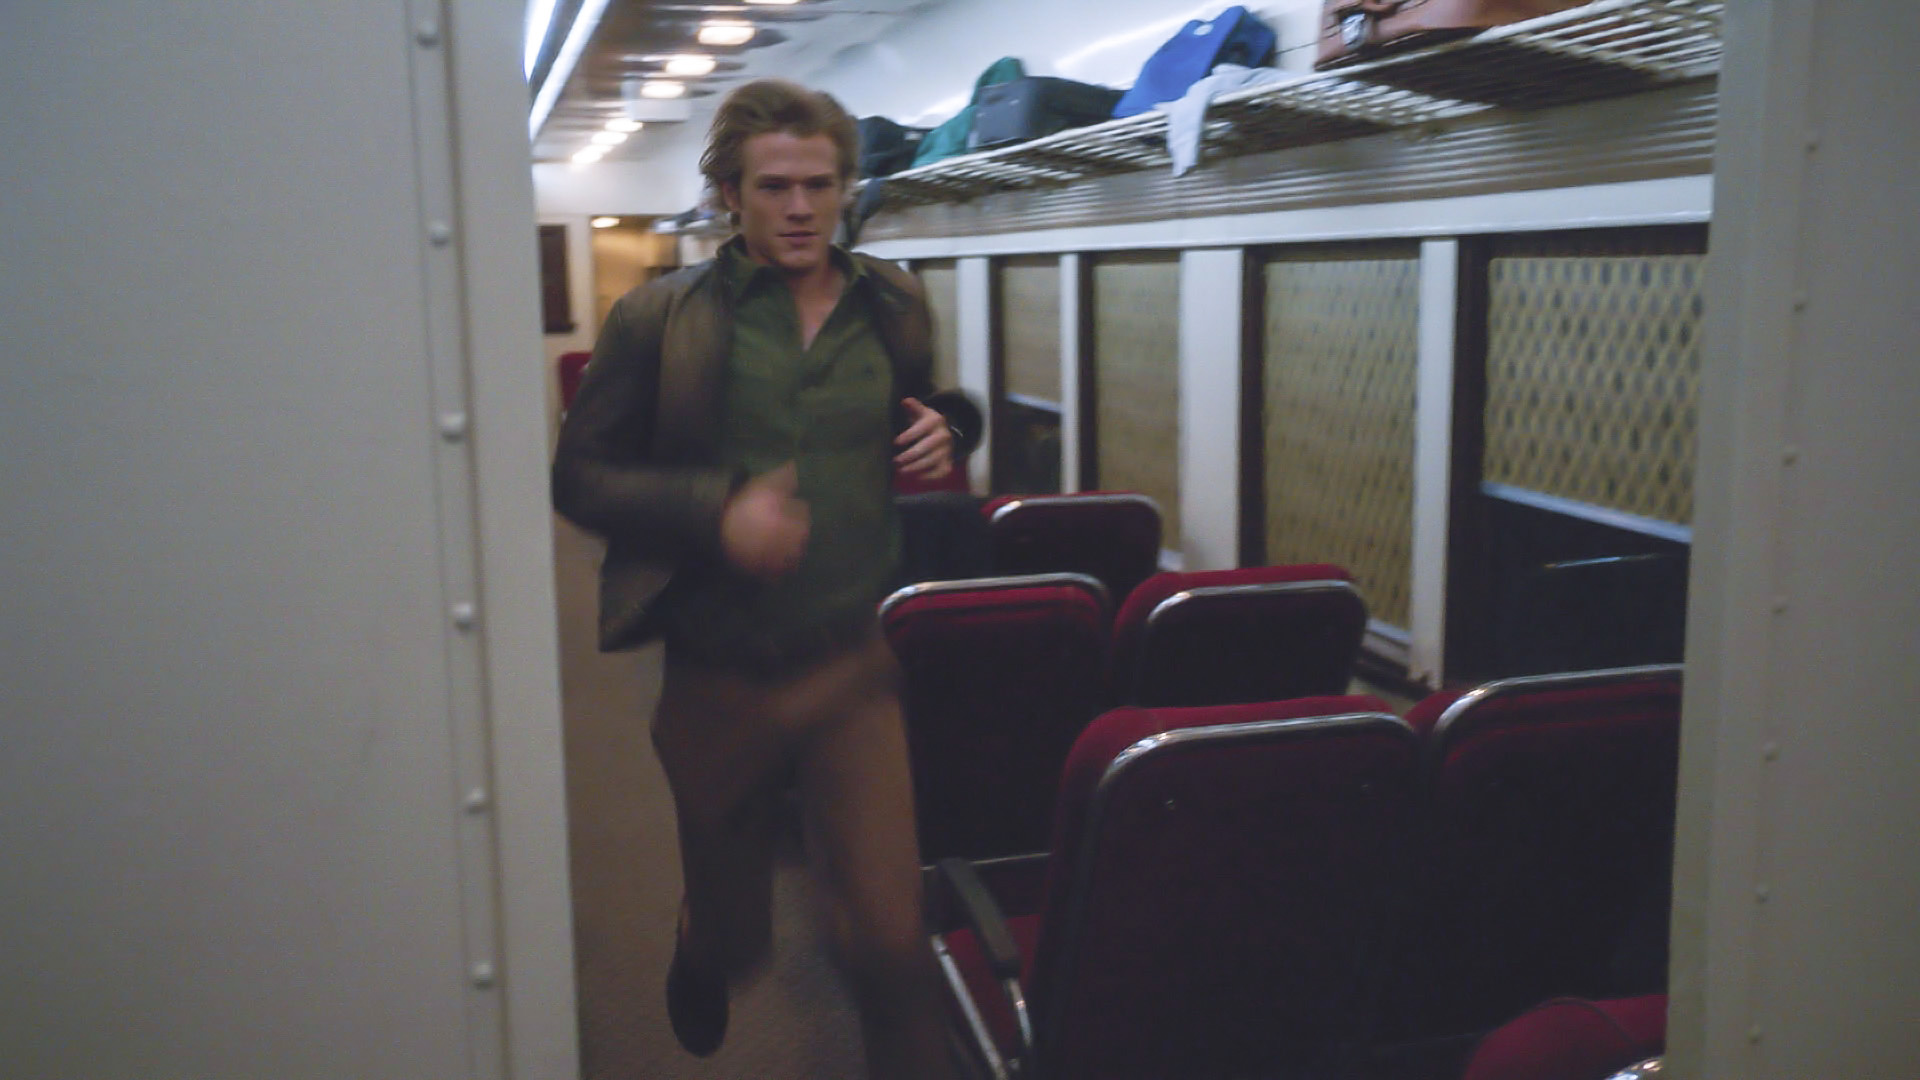 MacGyver is in hot pursuit on a train.